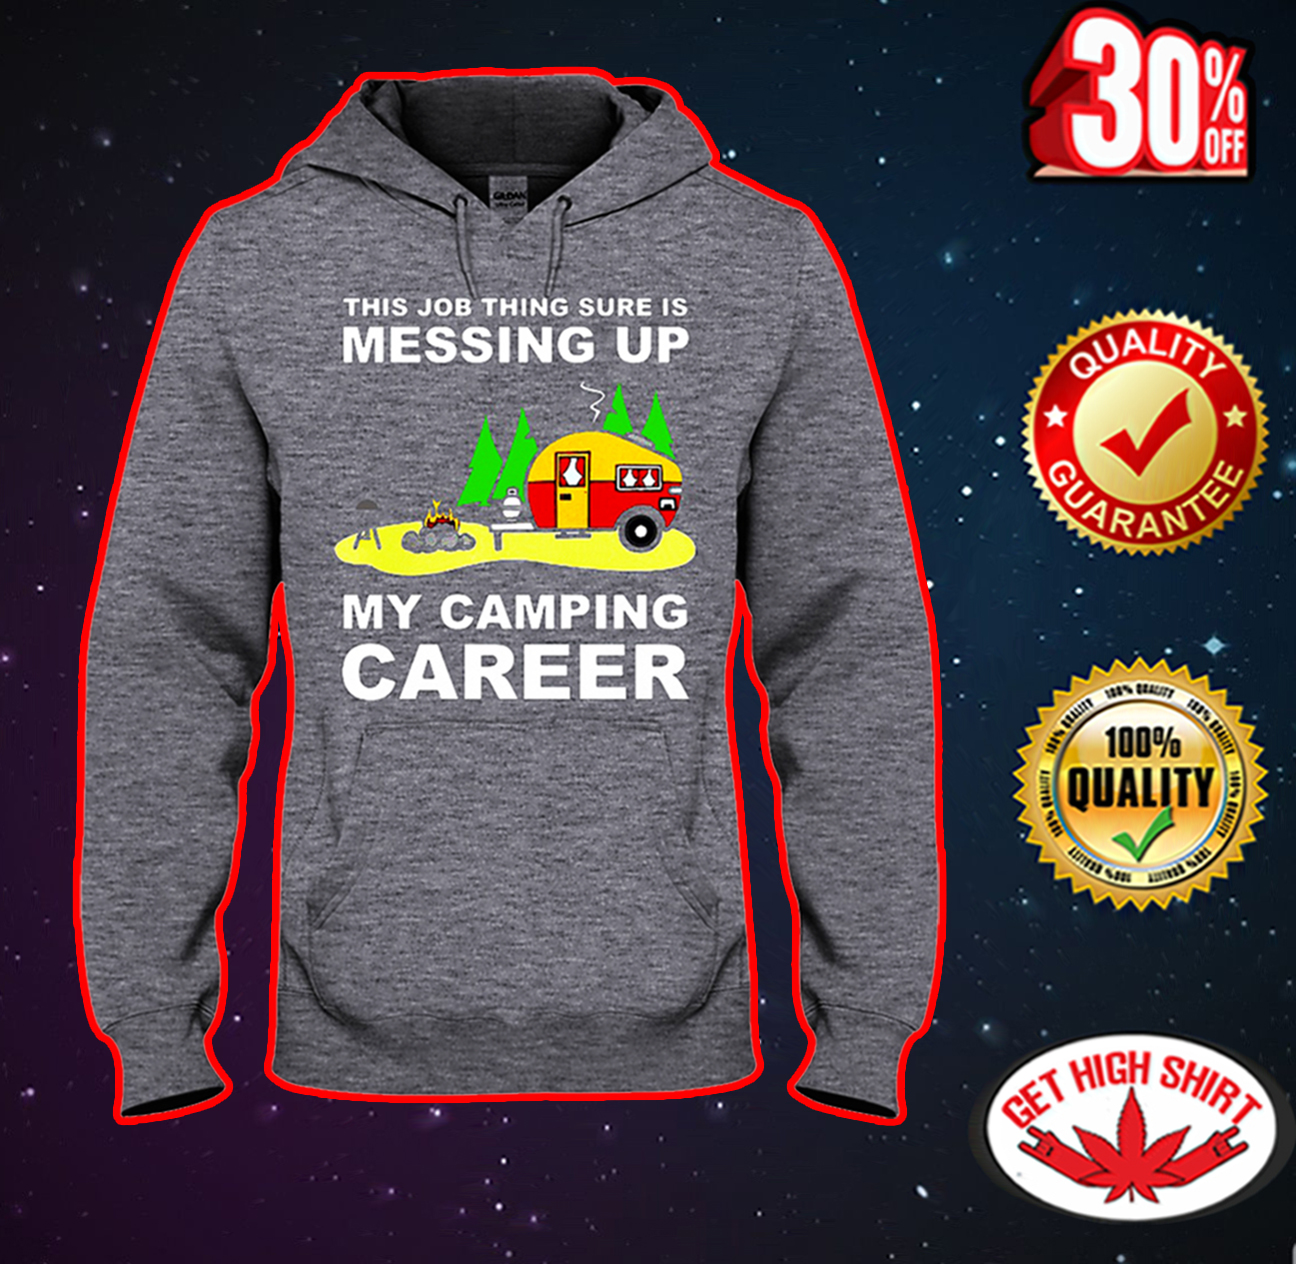 This Job Thing Sure Is Messing Up My Camping Career hooded sweatshirt